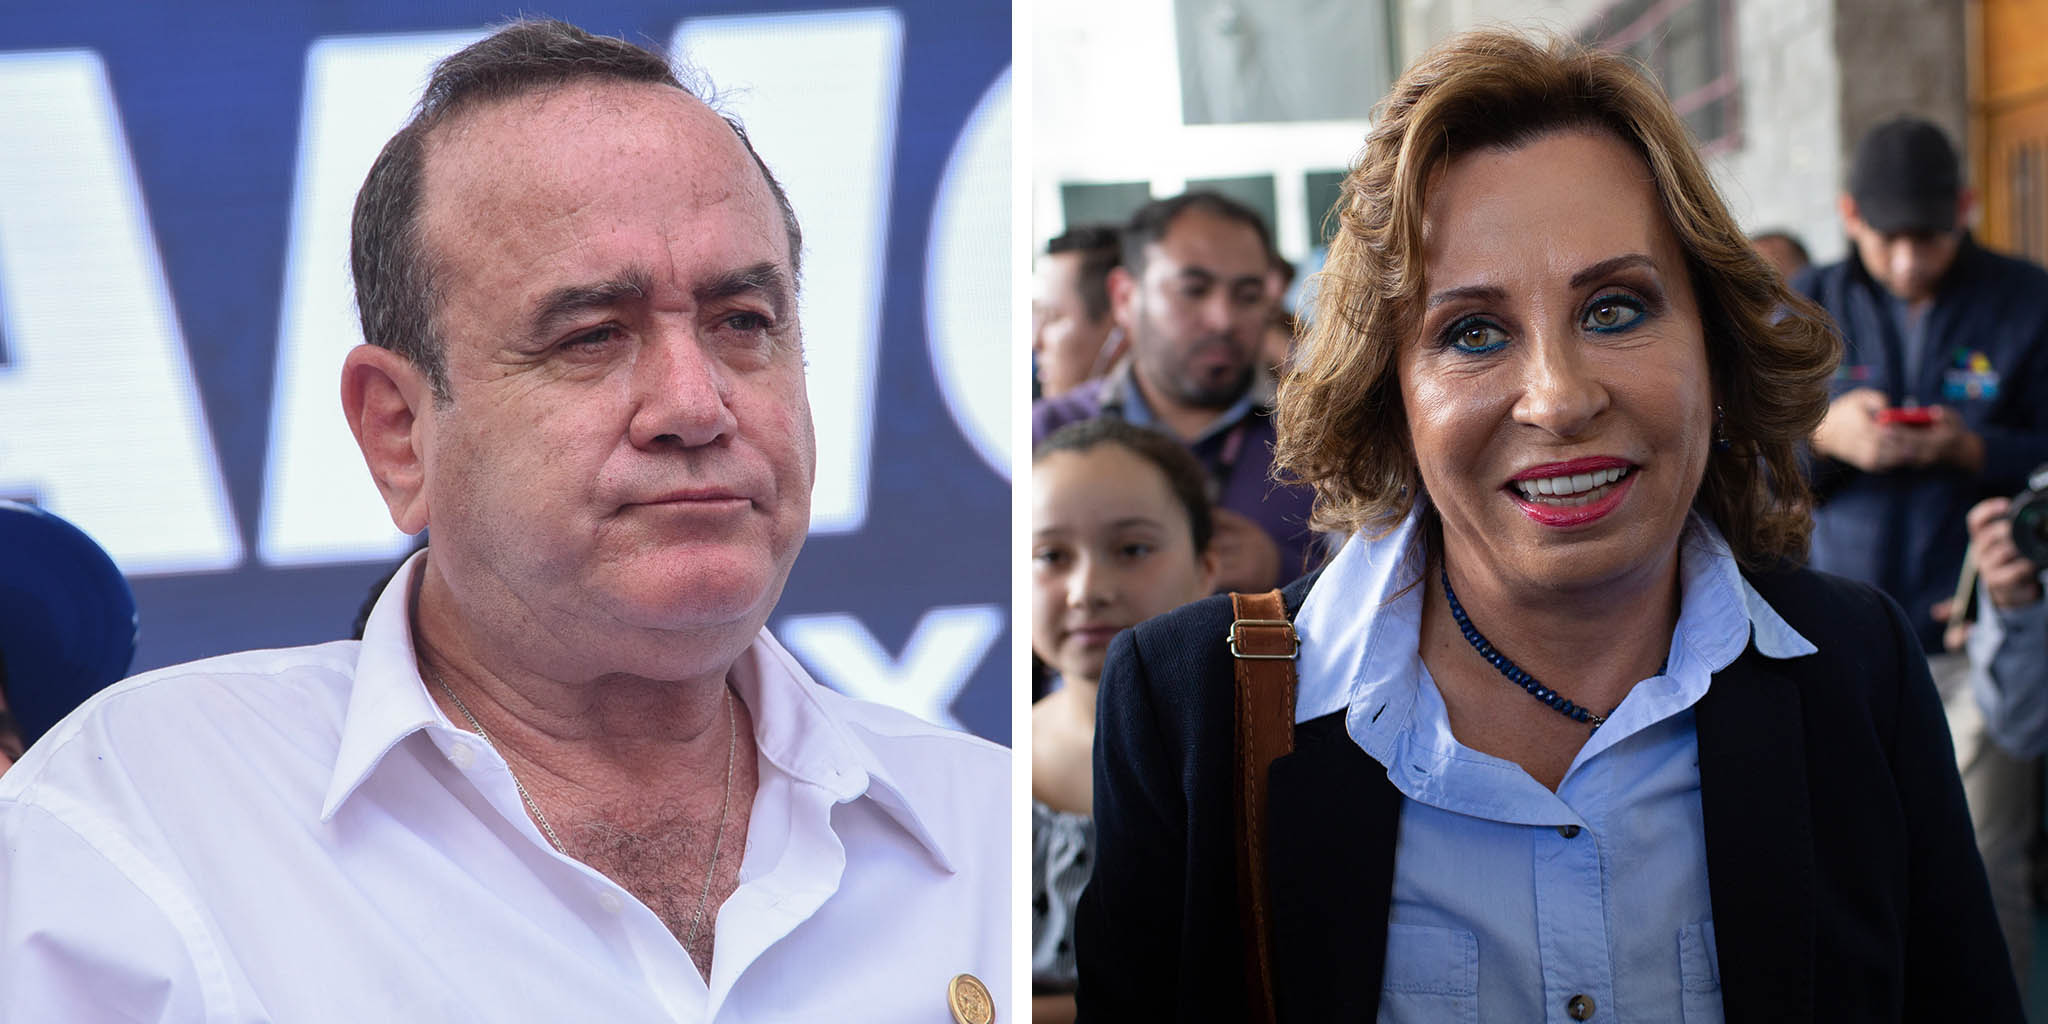 (L) Guatemalan candidate for the Vamos party Alejandro Giammattei attends his campaign closing rally in Guatemala City on August 4, 2019. (R) Sandra Torres, former first lady and presidential candidate for the National Union of Hope (Union Nacional de la Esperanza) party, walks through a polling station after voting in Guatemala City on June 16, 2019.